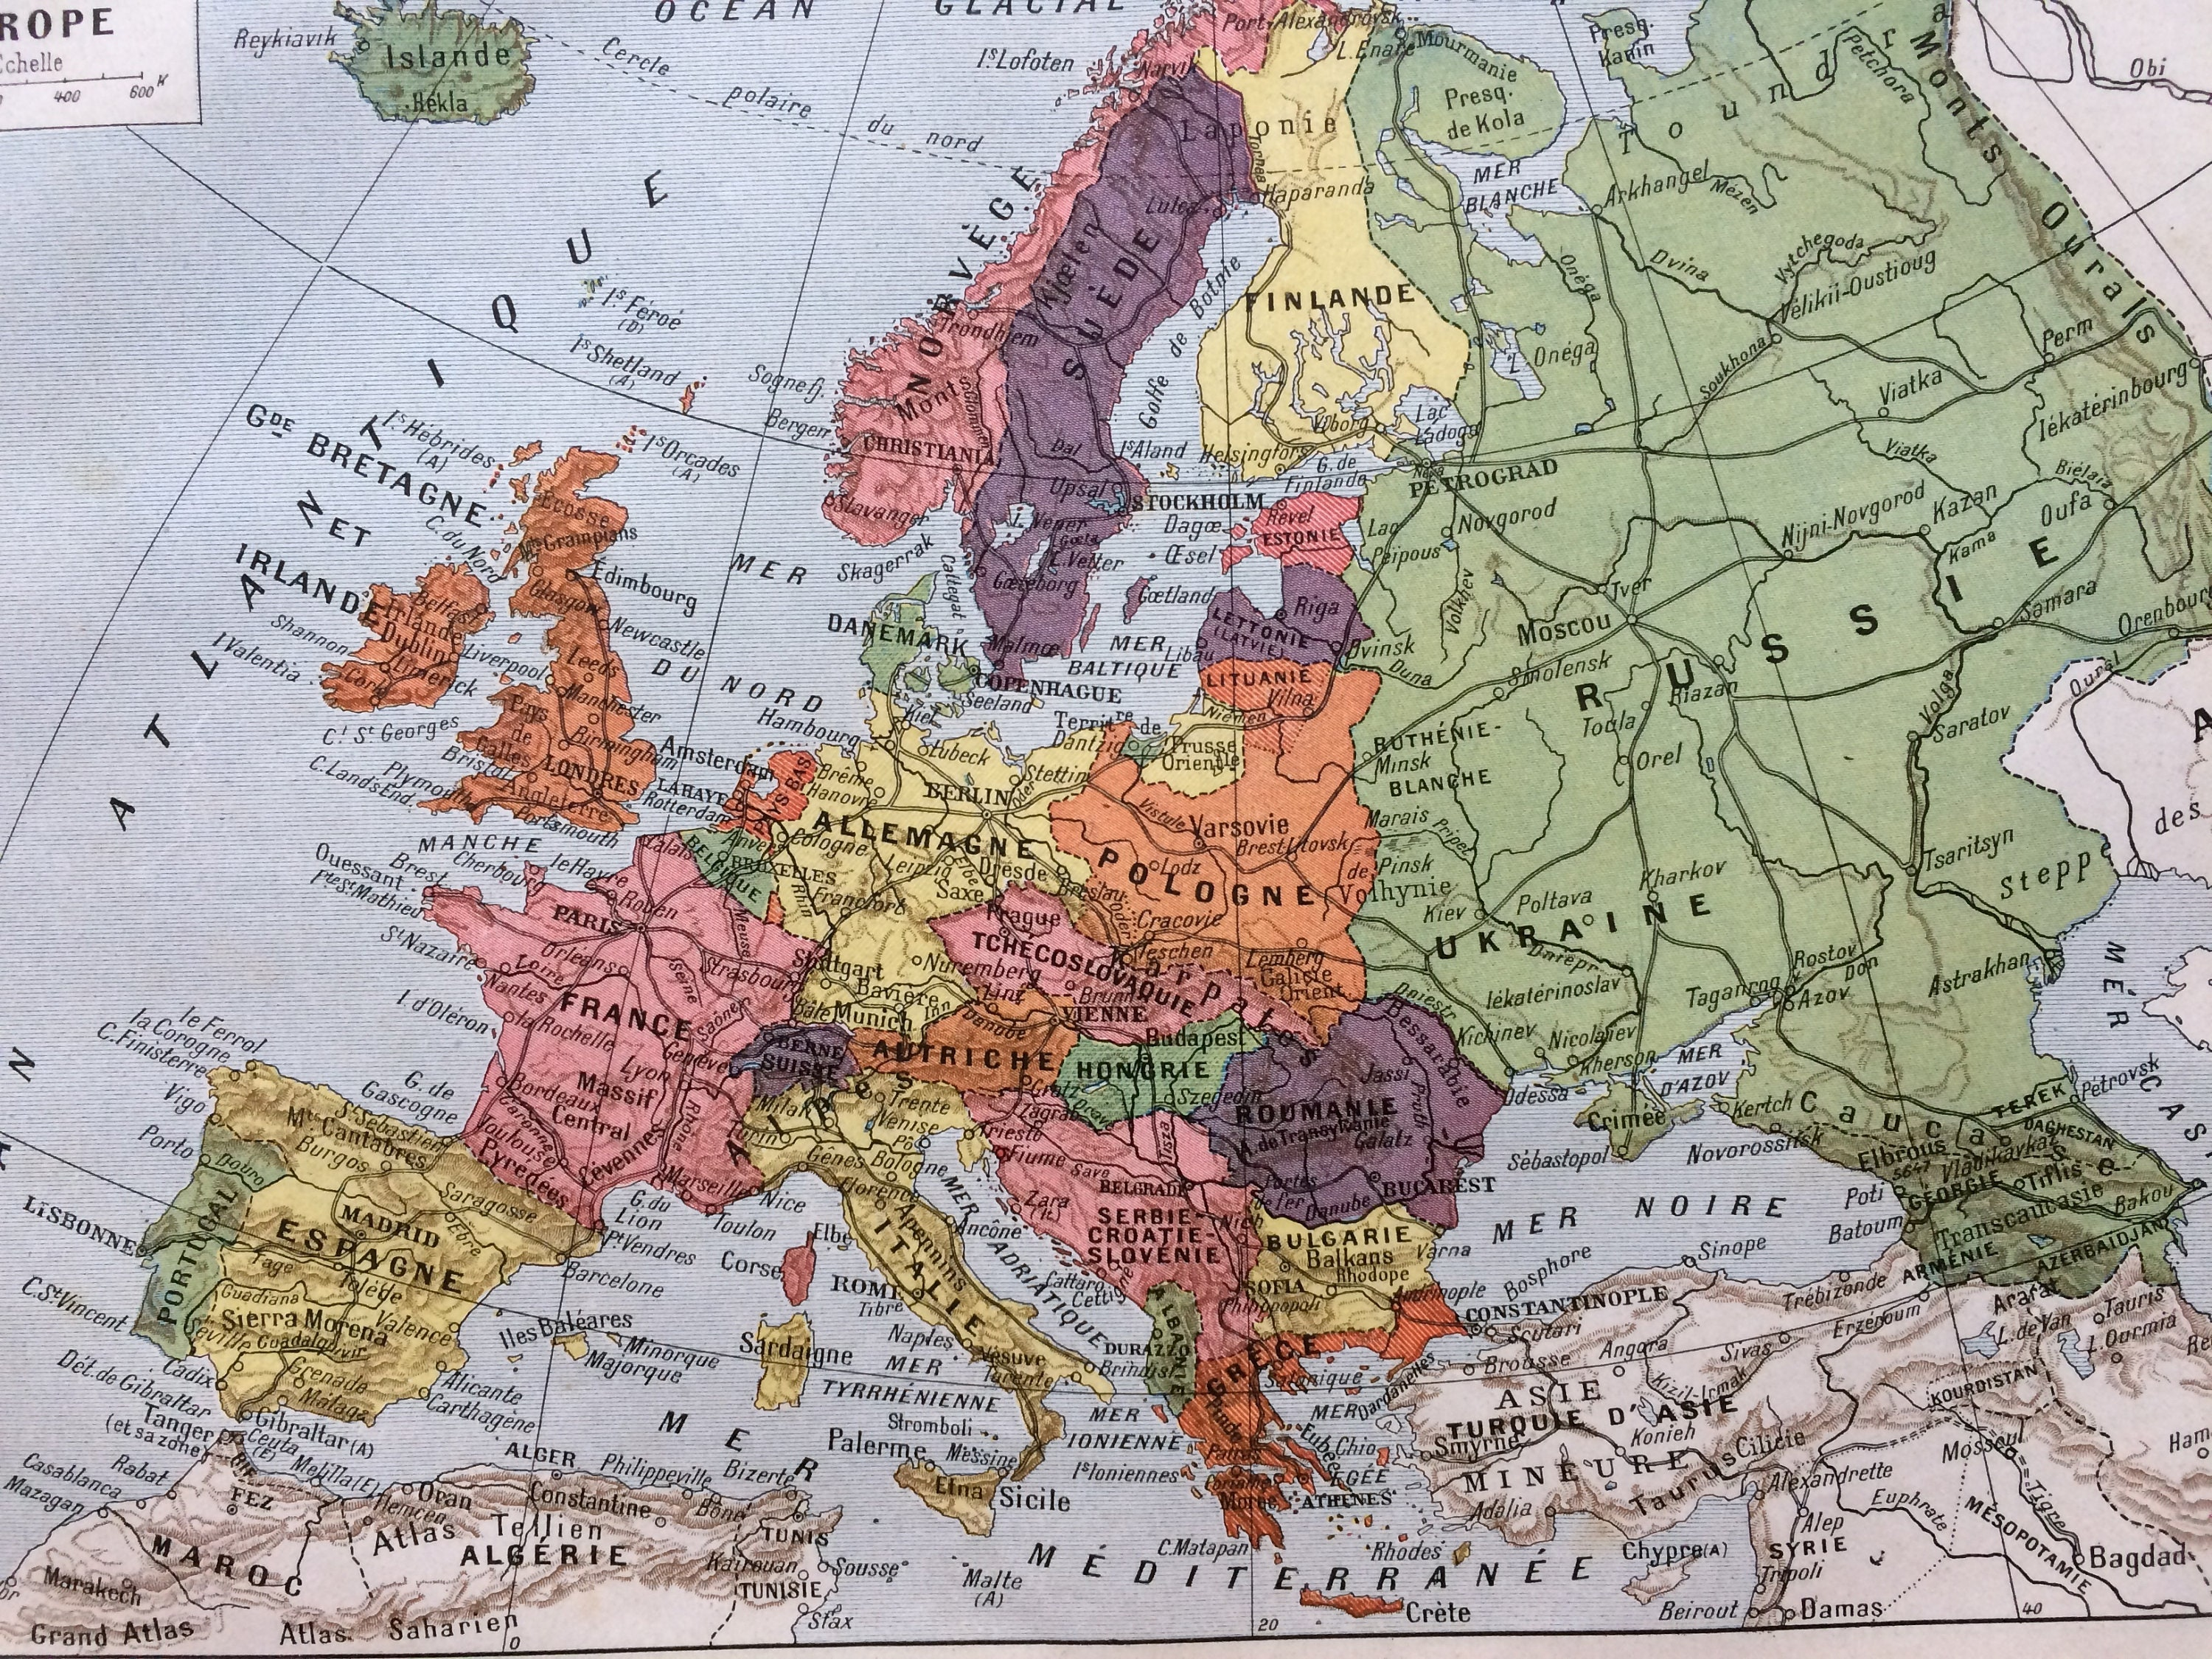 Picture of: 1923 Europe Original Antique Map Mounted And Matted Decorative Art Wall Decor Political Map Cartography Continent Map